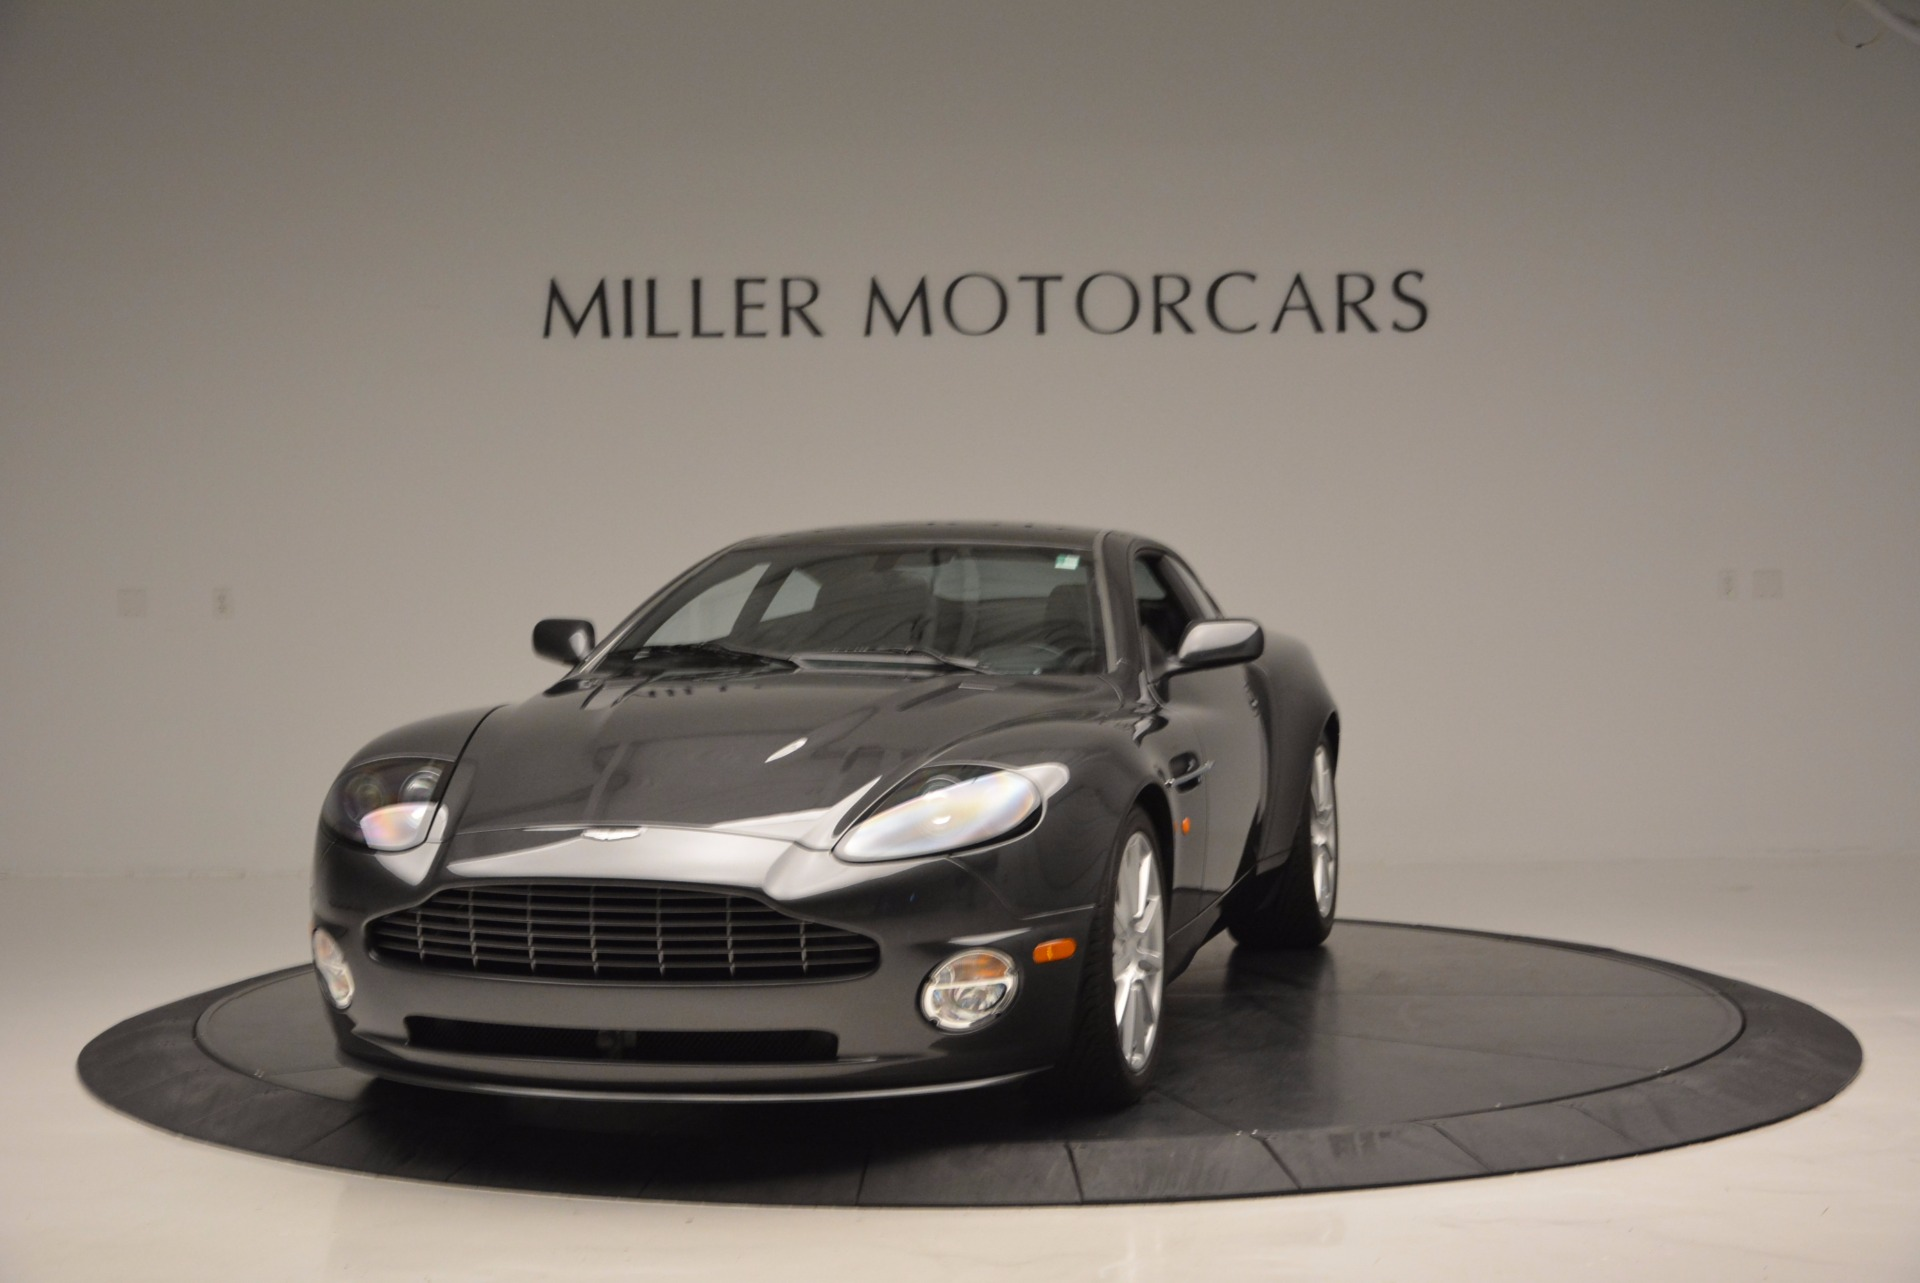 Used 2005 Aston Martin V12 Vanquish S For Sale In Westport, CT 645_main